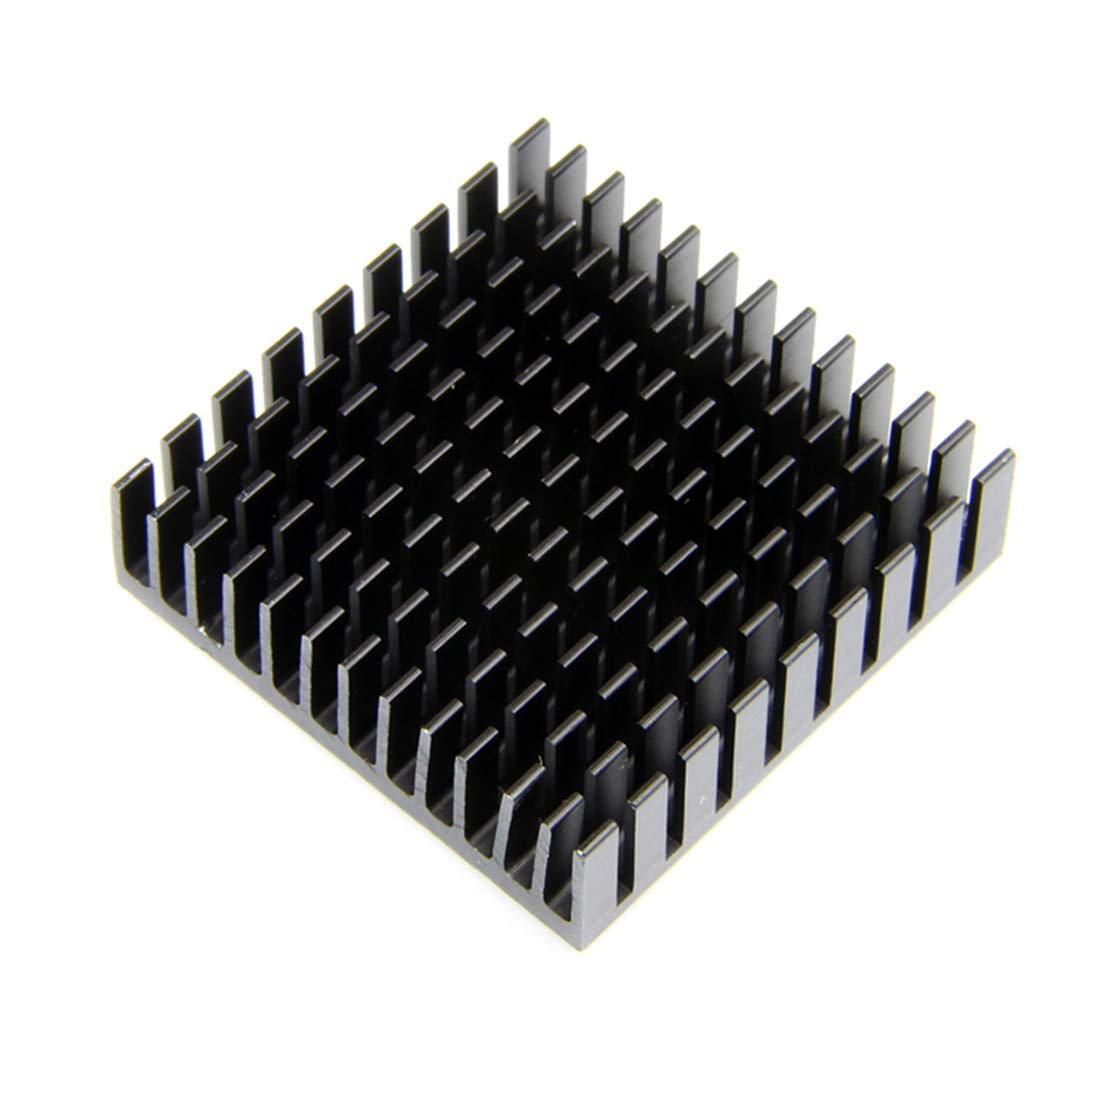 Yevison Radiator Aluminum Heatsink Extruded Profile Heat Dissipation For Electronic Z09 Drop ship High Quality by Yevison